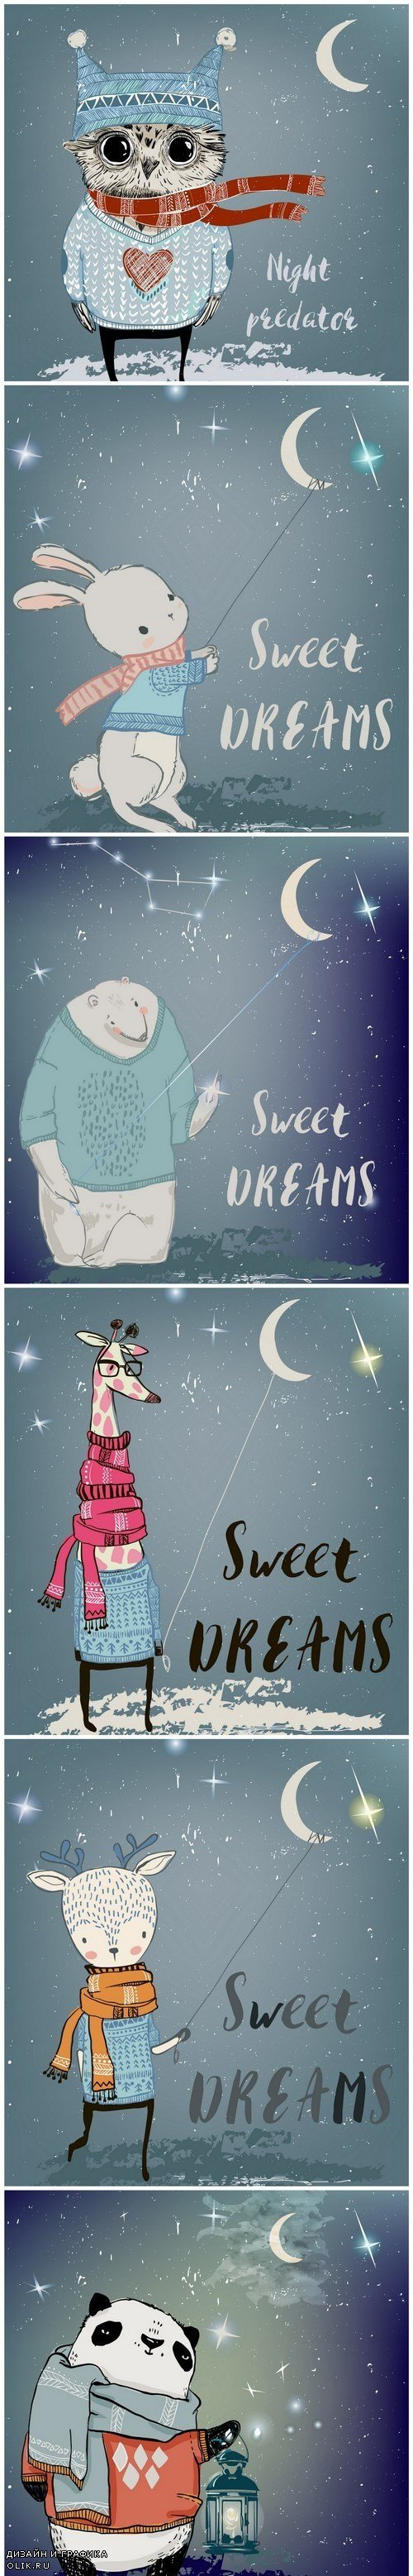 Sweet Dreams Illustrations - Set of 6xEPS Professional Vector Stock